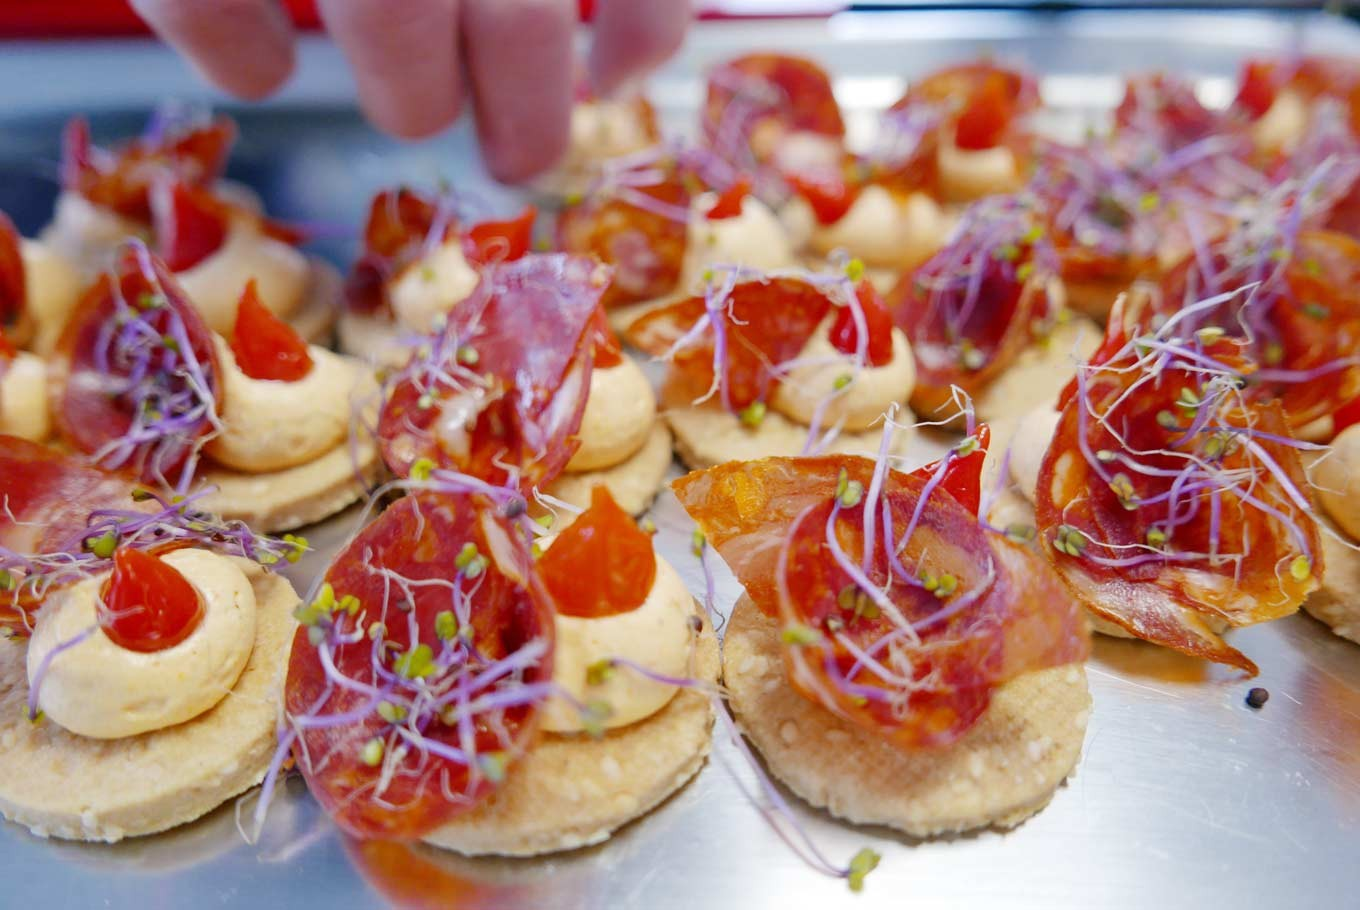 Beautiful hors-d'oeuvres prepared by Osmose's chefs for parties and gatherings.